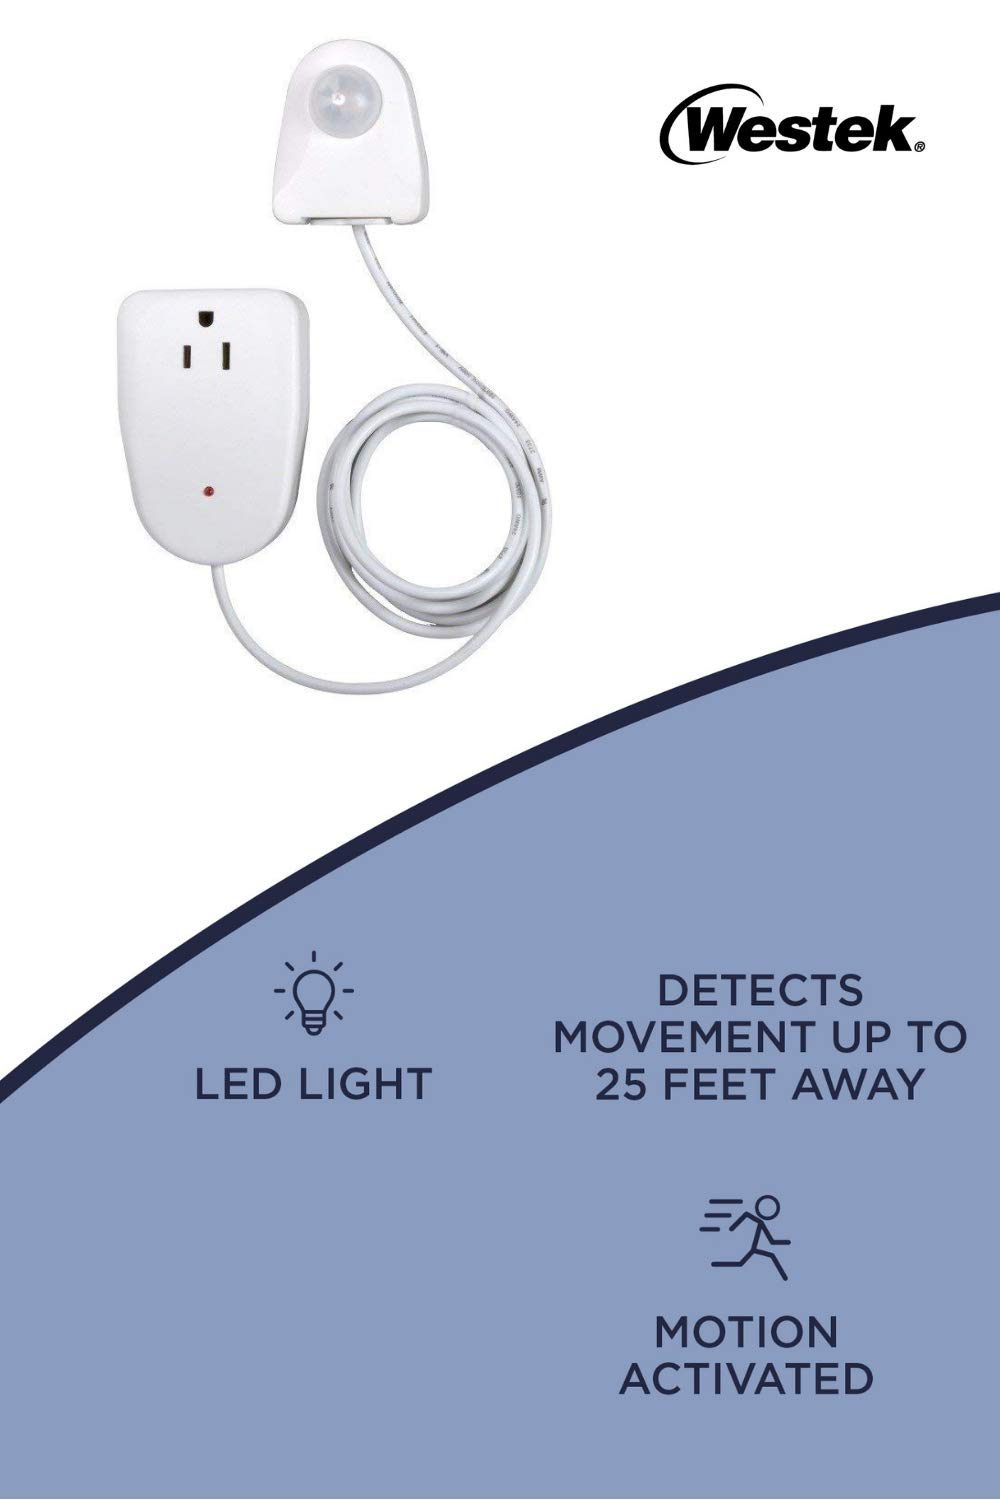 Motion Activated Light Control – Outlet Plug-in Device Turns On Your Indoor Lamp Lights When Movement Is Detected – LED Compatible, Ideal For Dark Rooms, Hallways – 25ft Detection, 6 Foot Cord by WESTEK (Image #2)